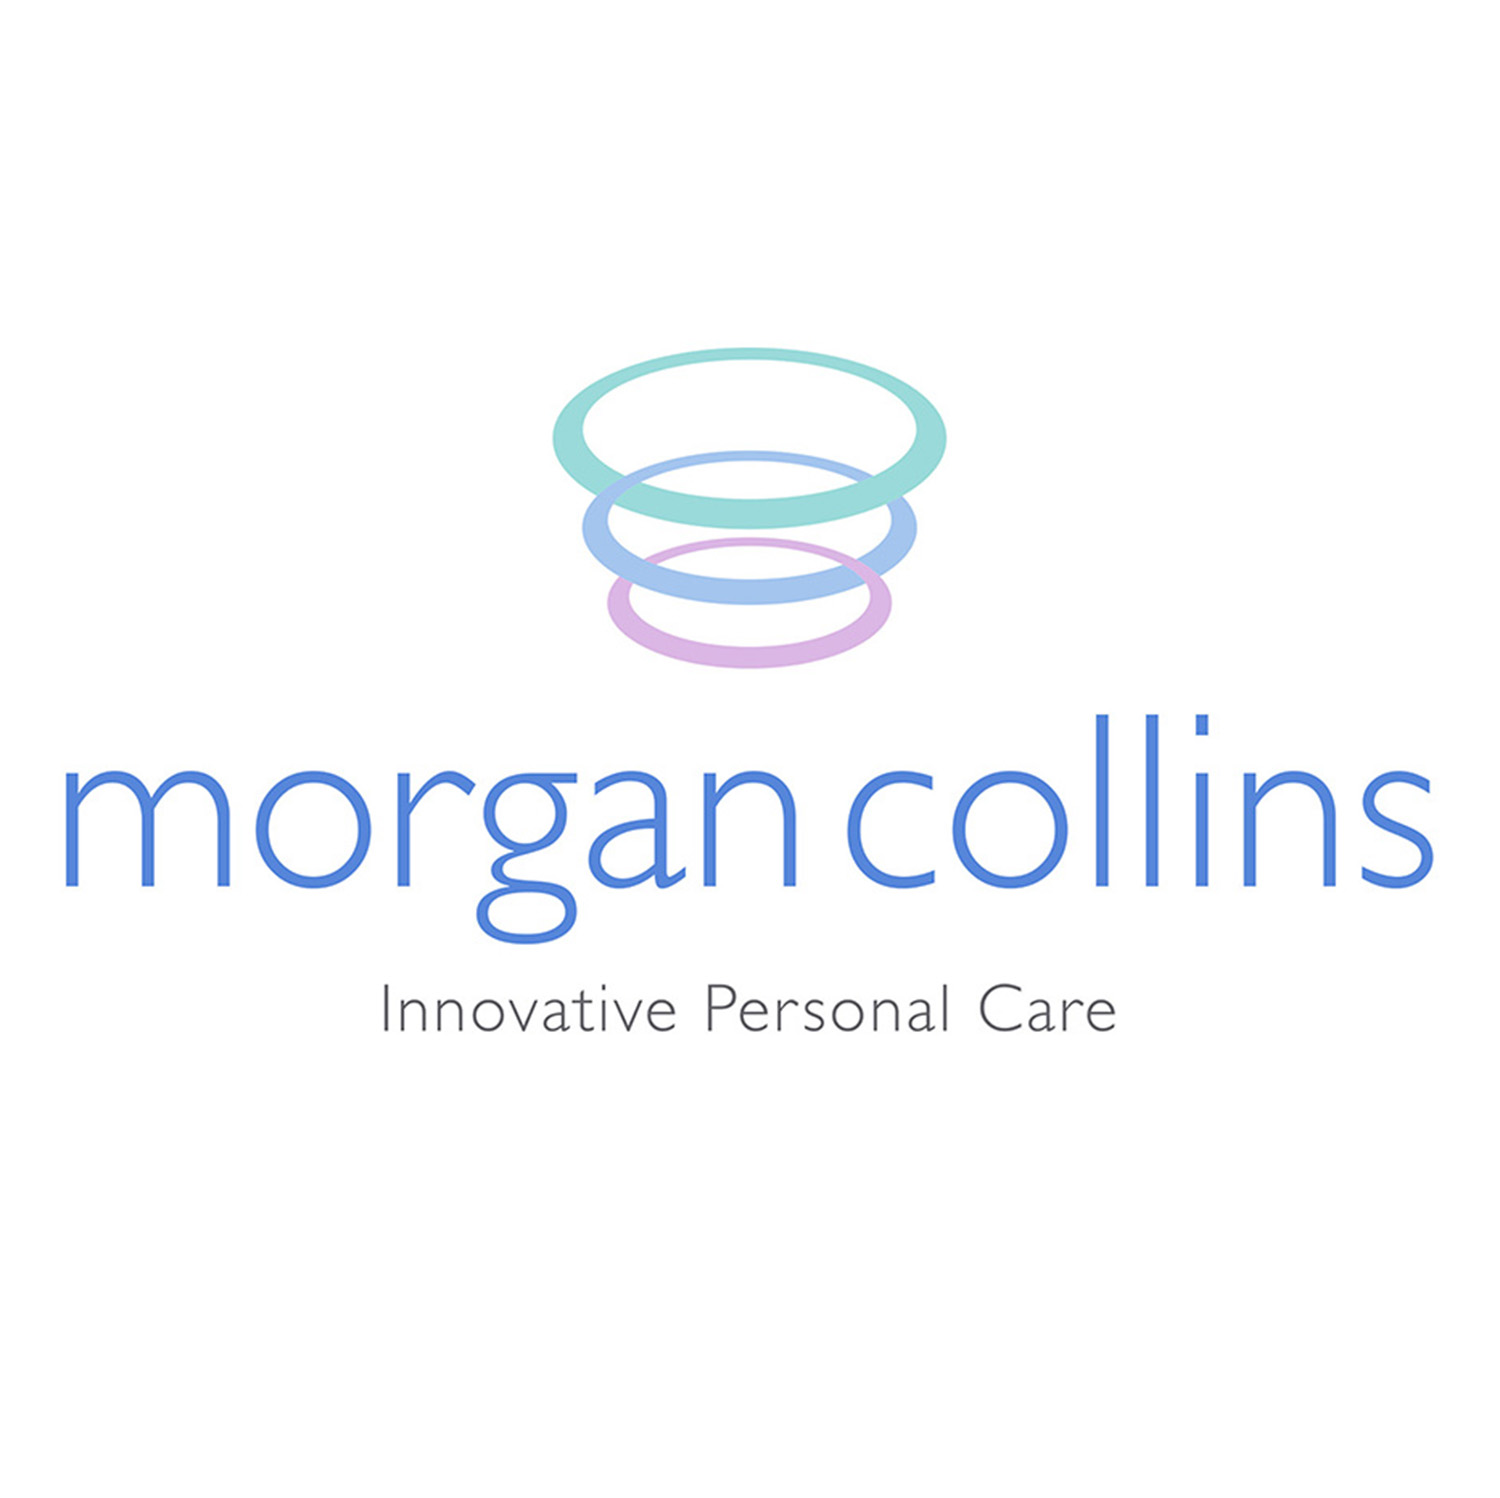 MorganCollins Artwork (1).jpg